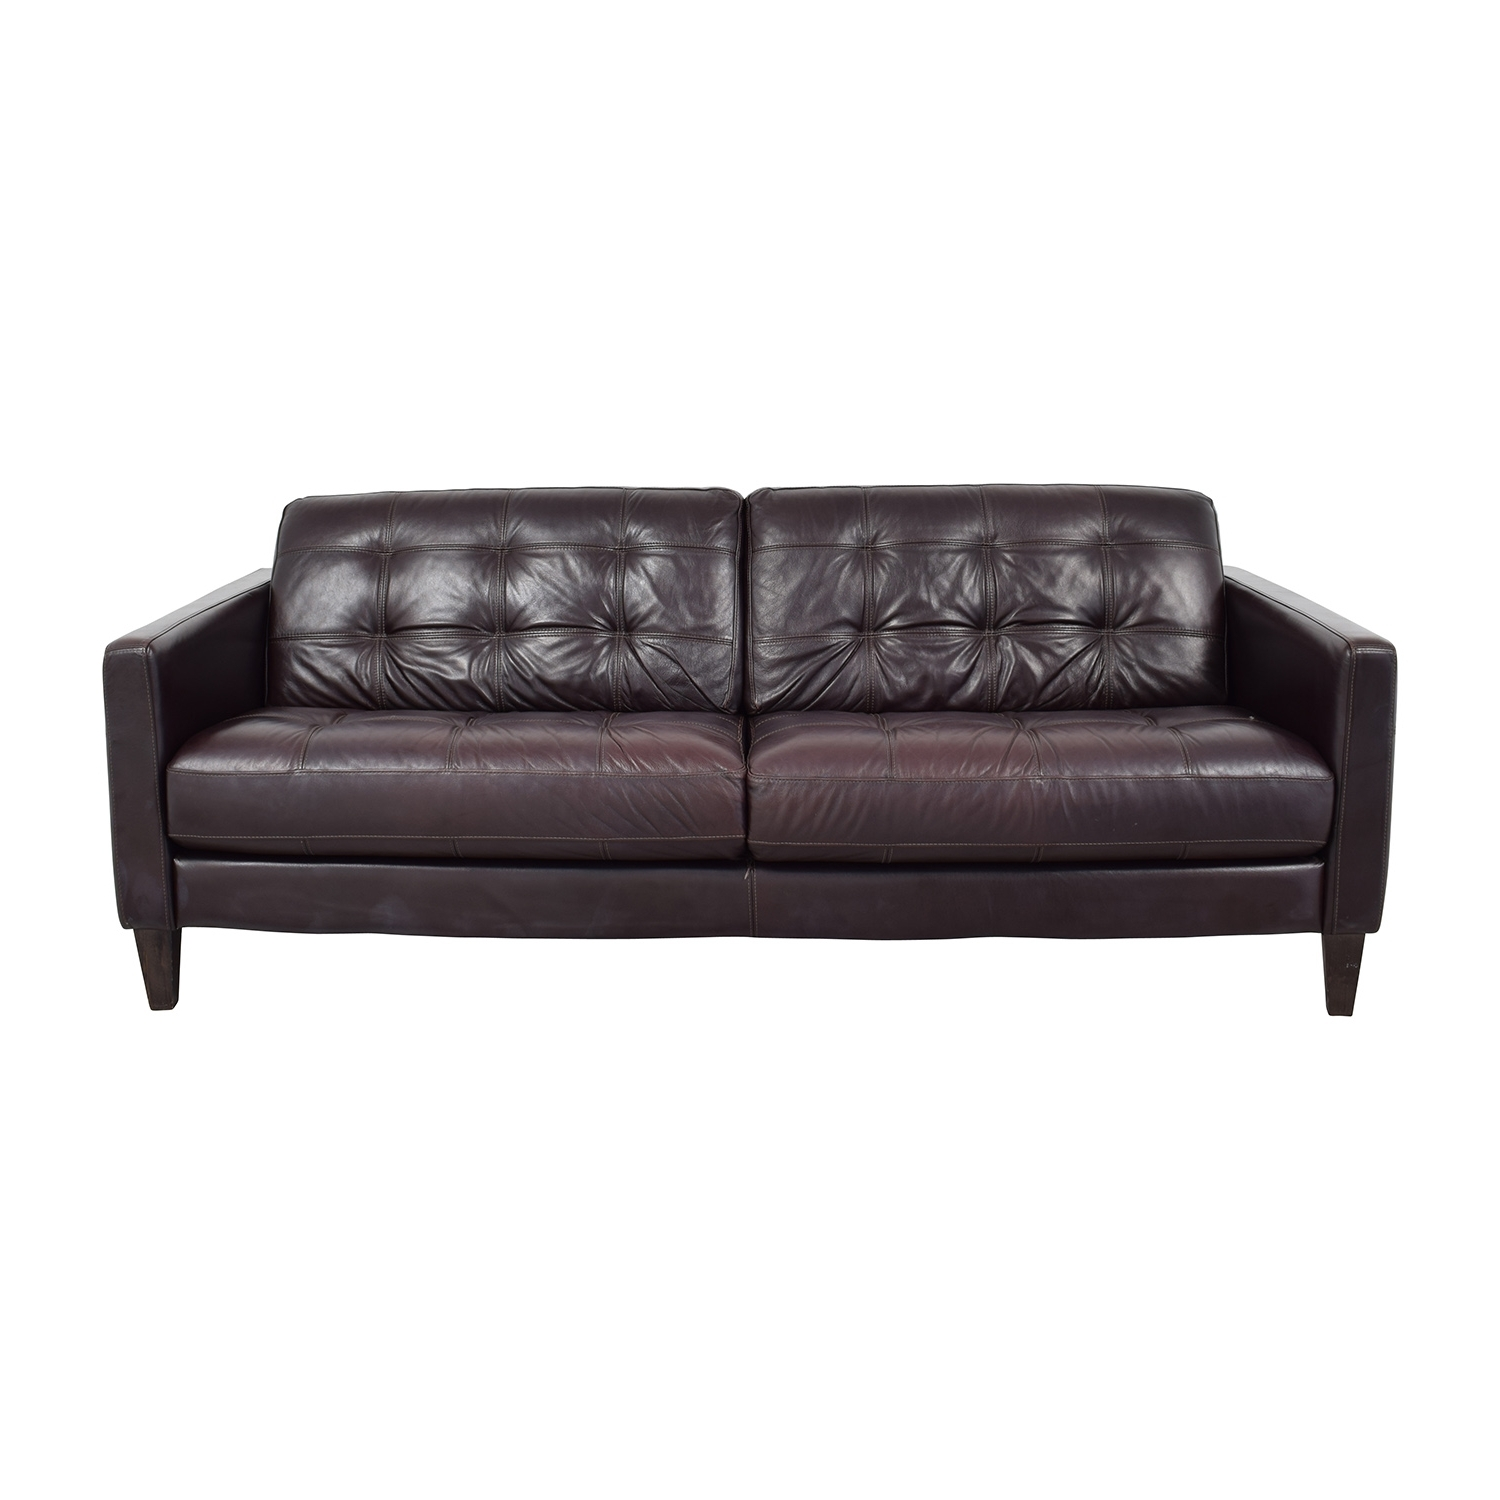 [%59% Off – Macy's Macy's Milan Leather Sofa / Sofas Pertaining To Fashionable Macys Leather Sofas|Macys Leather Sofas With Most Up To Date 59% Off – Macy's Macy's Milan Leather Sofa / Sofas|Latest Macys Leather Sofas Throughout 59% Off – Macy's Macy's Milan Leather Sofa / Sofas|Latest 59% Off – Macy's Macy's Milan Leather Sofa / Sofas Intended For Macys Leather Sofas%] (View 1 of 20)